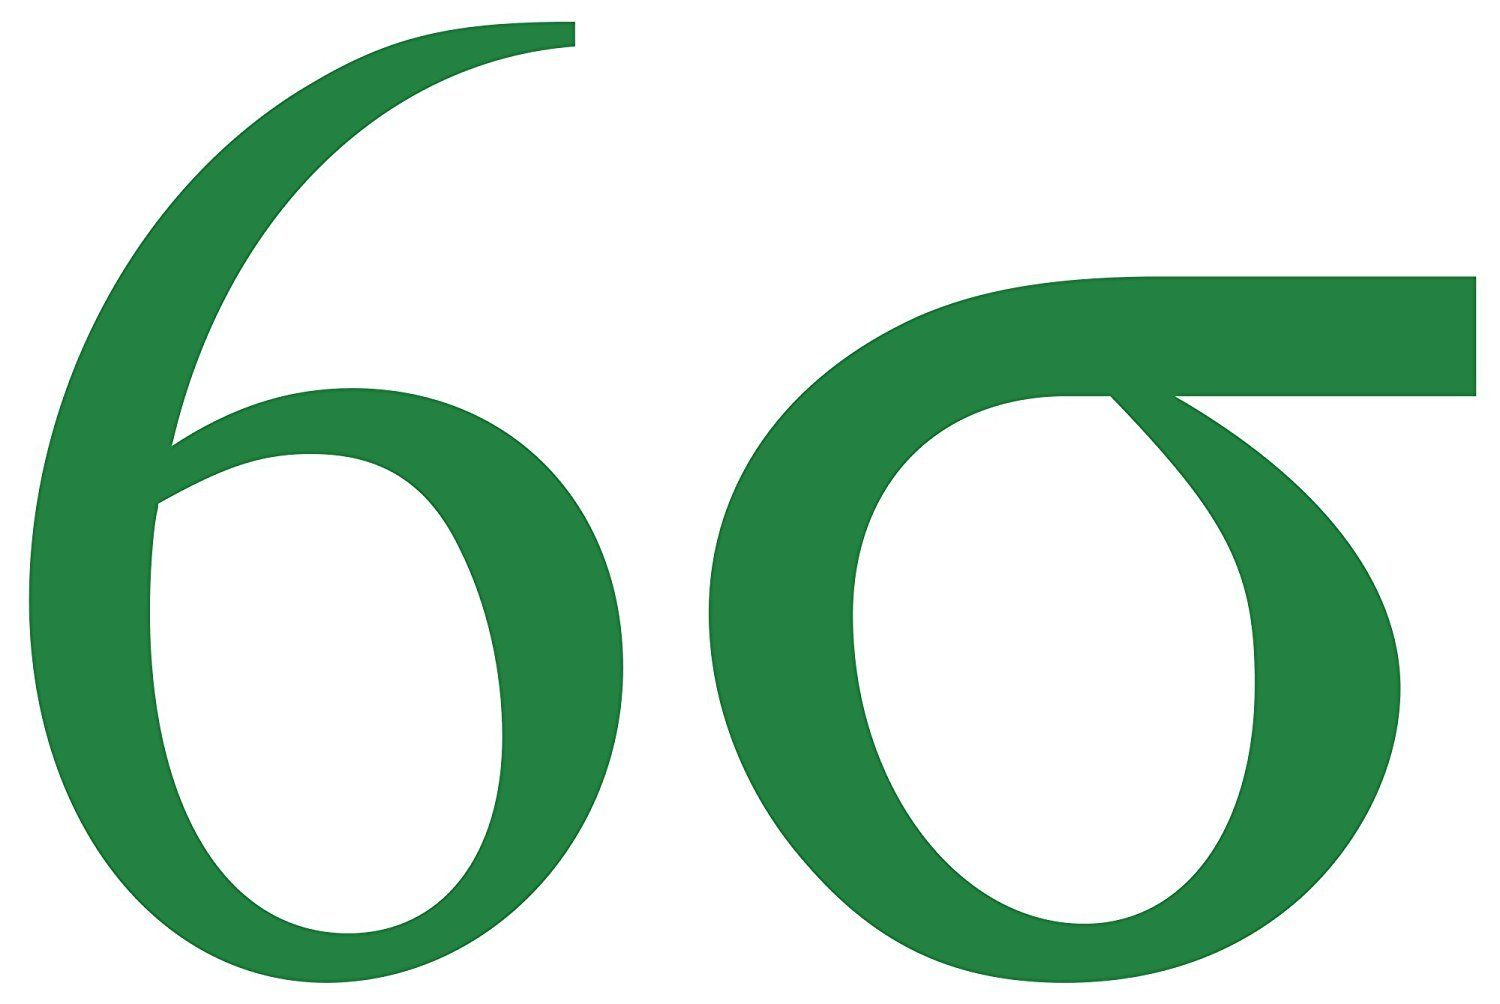 Learn Lean Six Sigma Green Belt The Easy Way Now, Certification & Training Course, Self Paced Learning, 100% Guaranteed Certification, All Inclusive, SEE RESULTS, Get Trained & Certified Now Finally by Veritastech